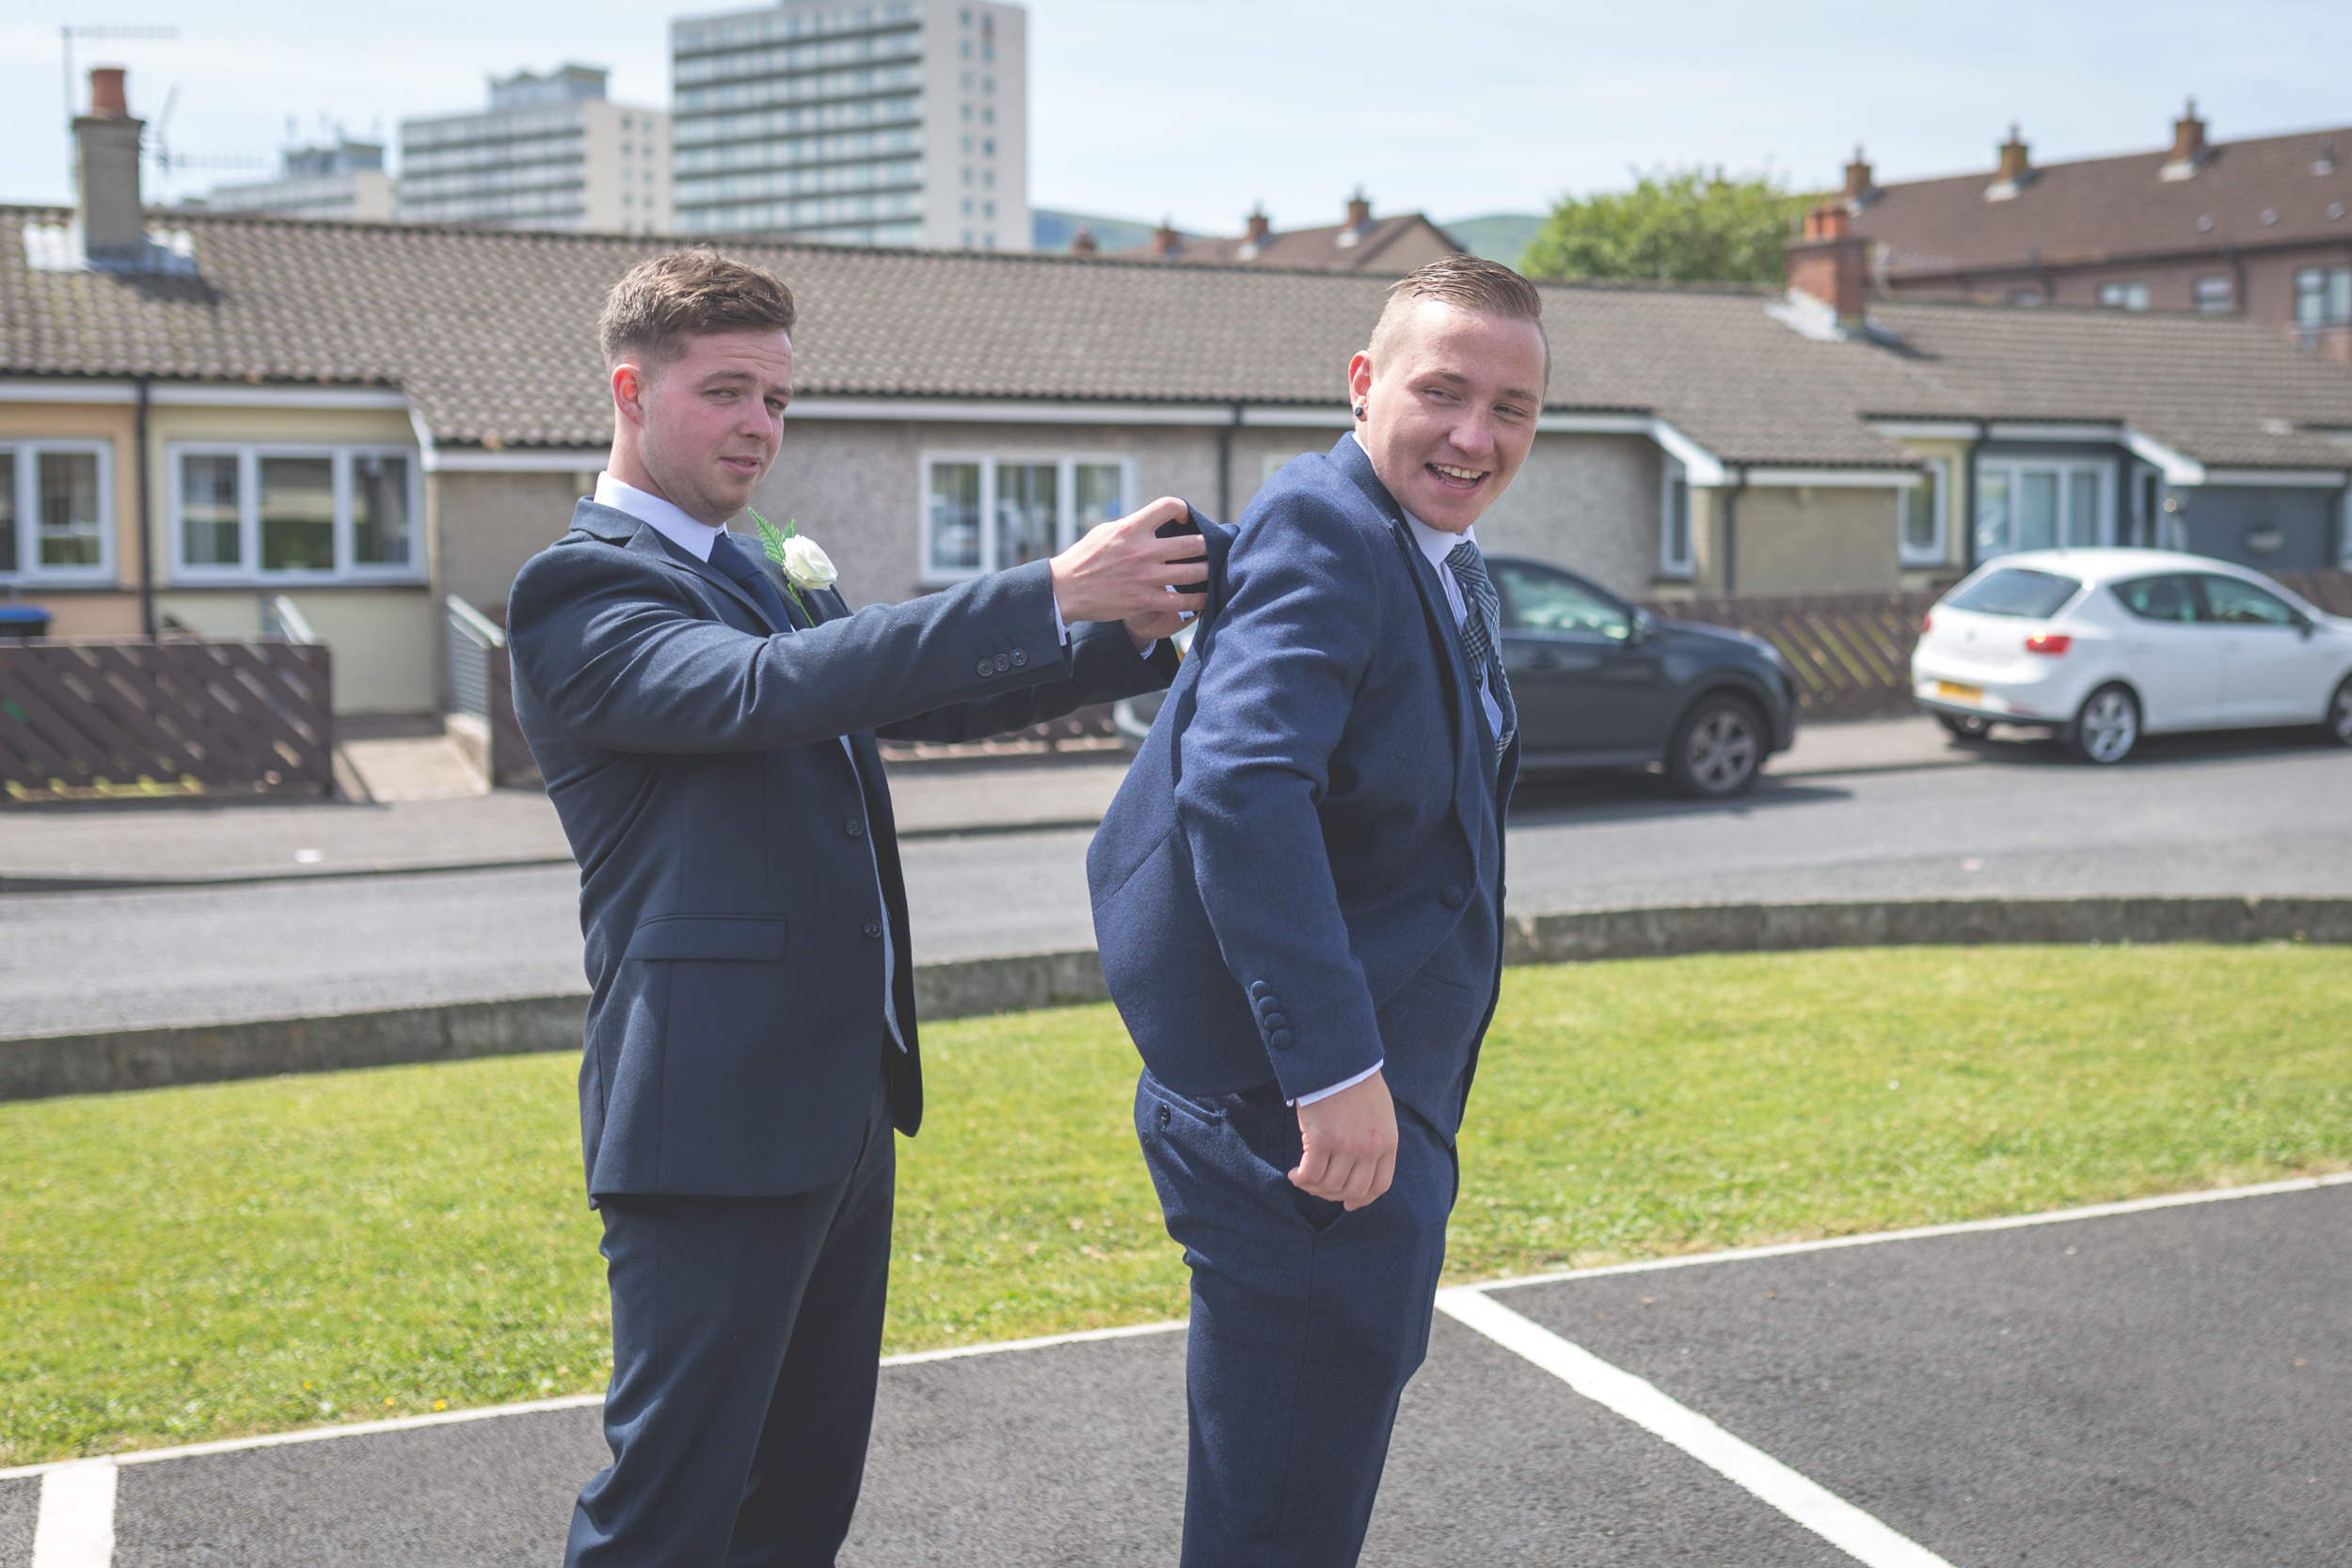 Brian McEwan | Northern Ireland Wedding Photographer | Rebecca & Michael | Ceremony-1.jpg